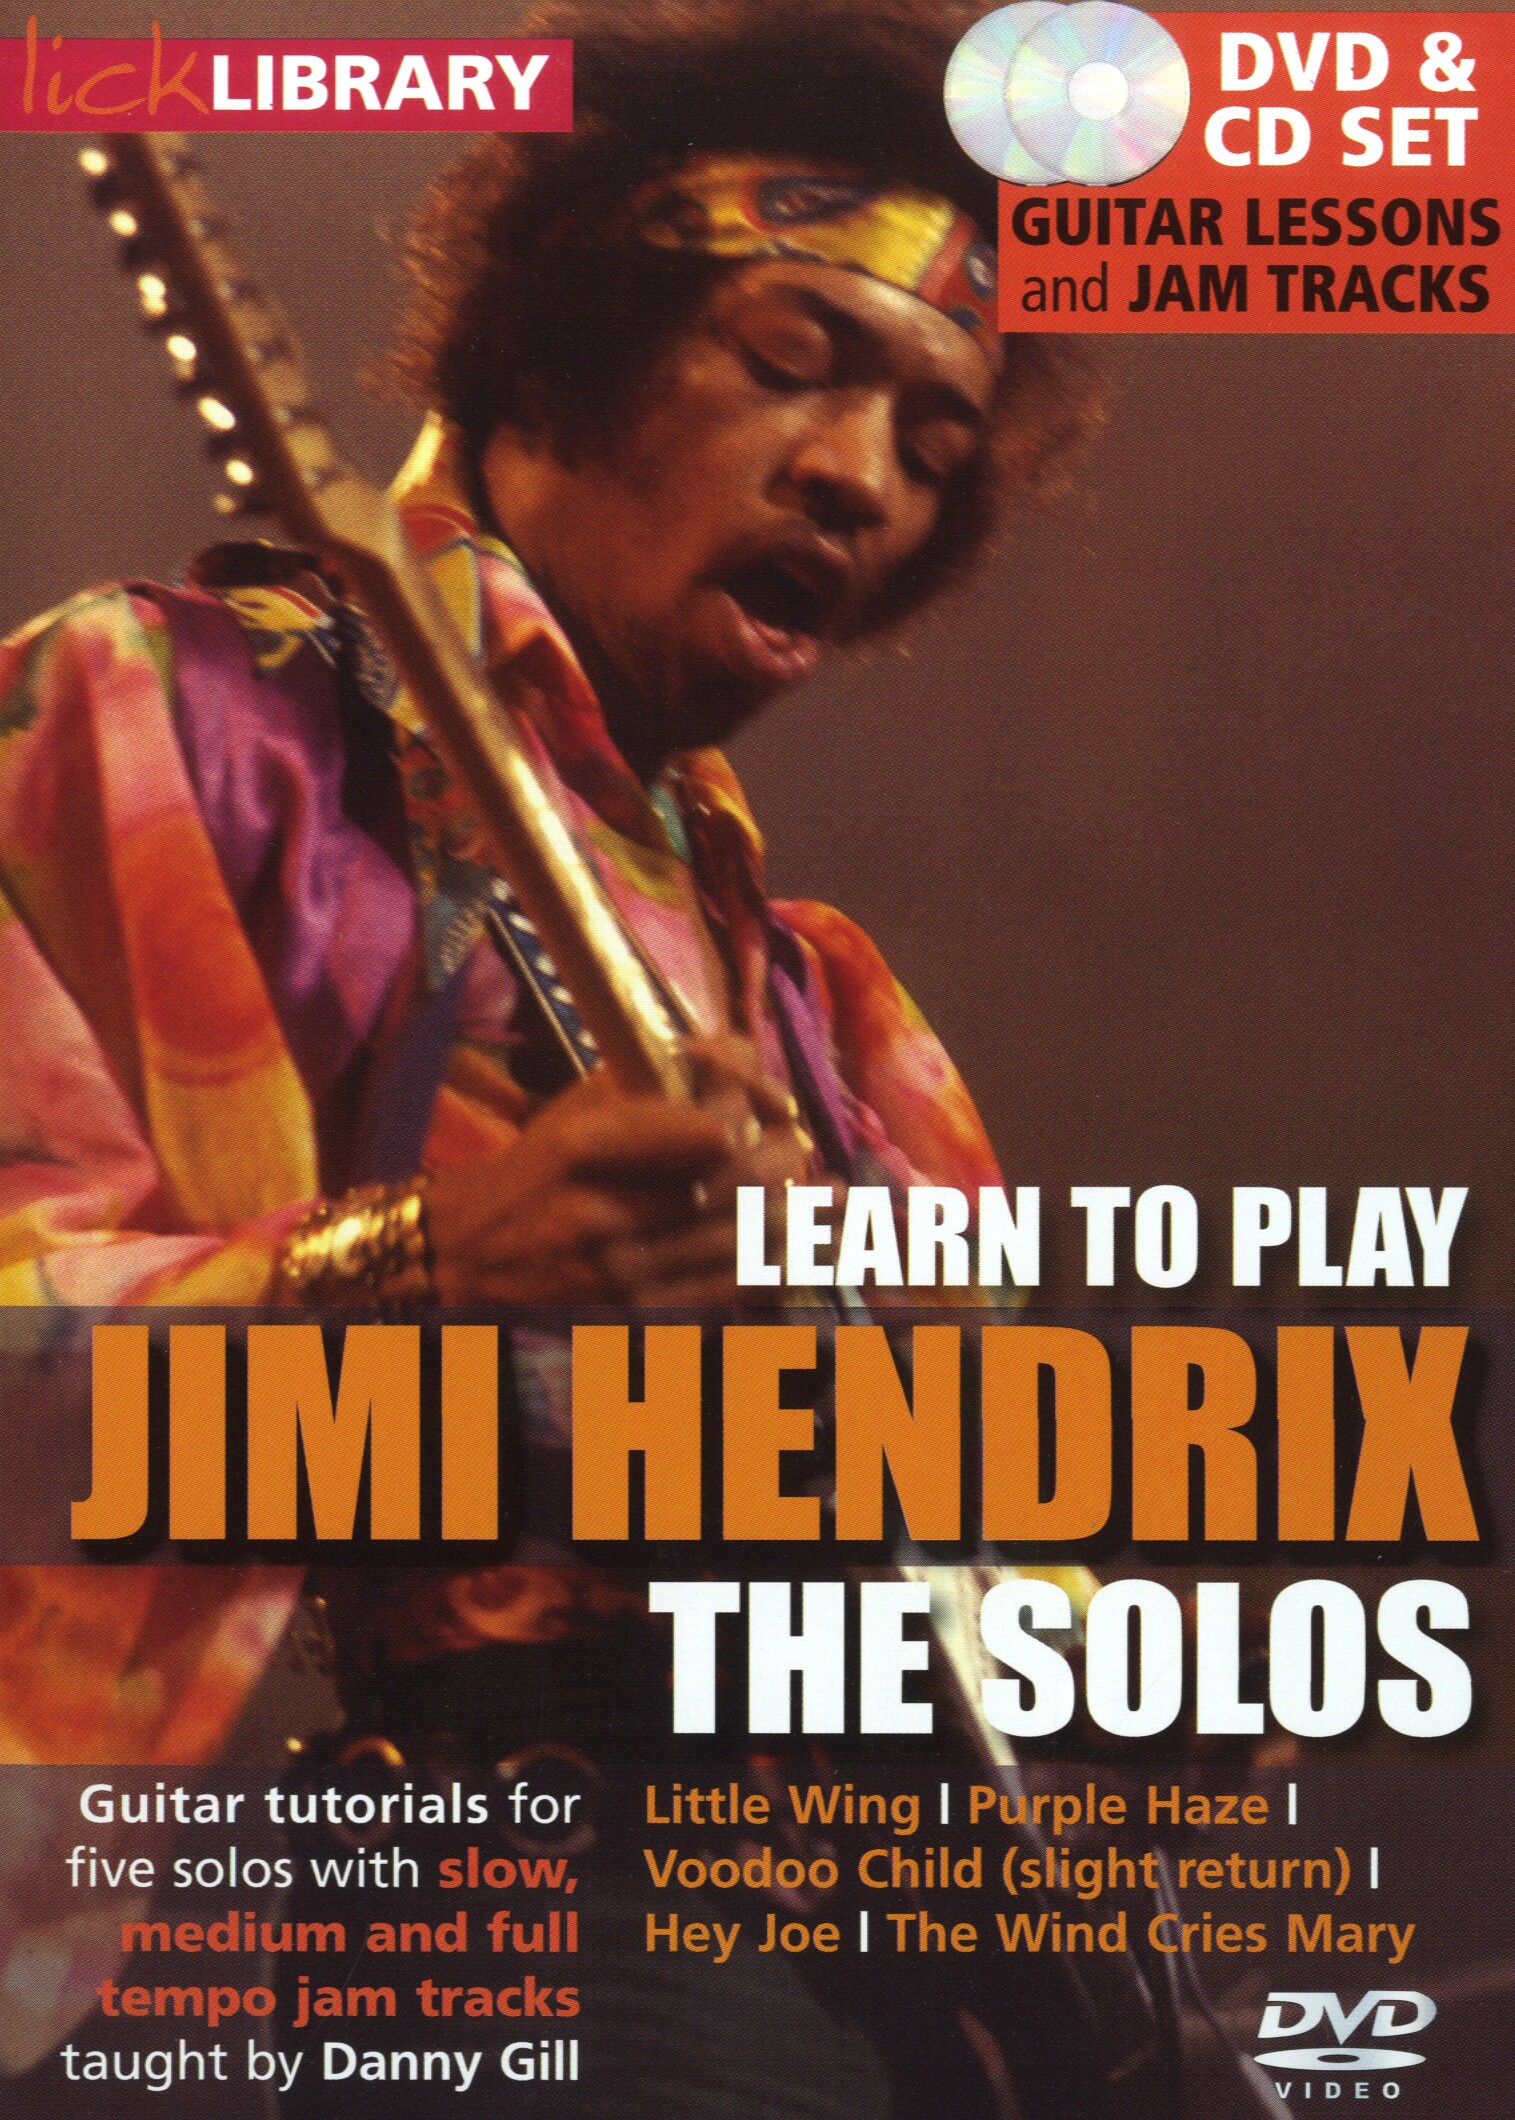 Lick Library: Learn To Play Jimi Hendrix - The Solos [DVD]